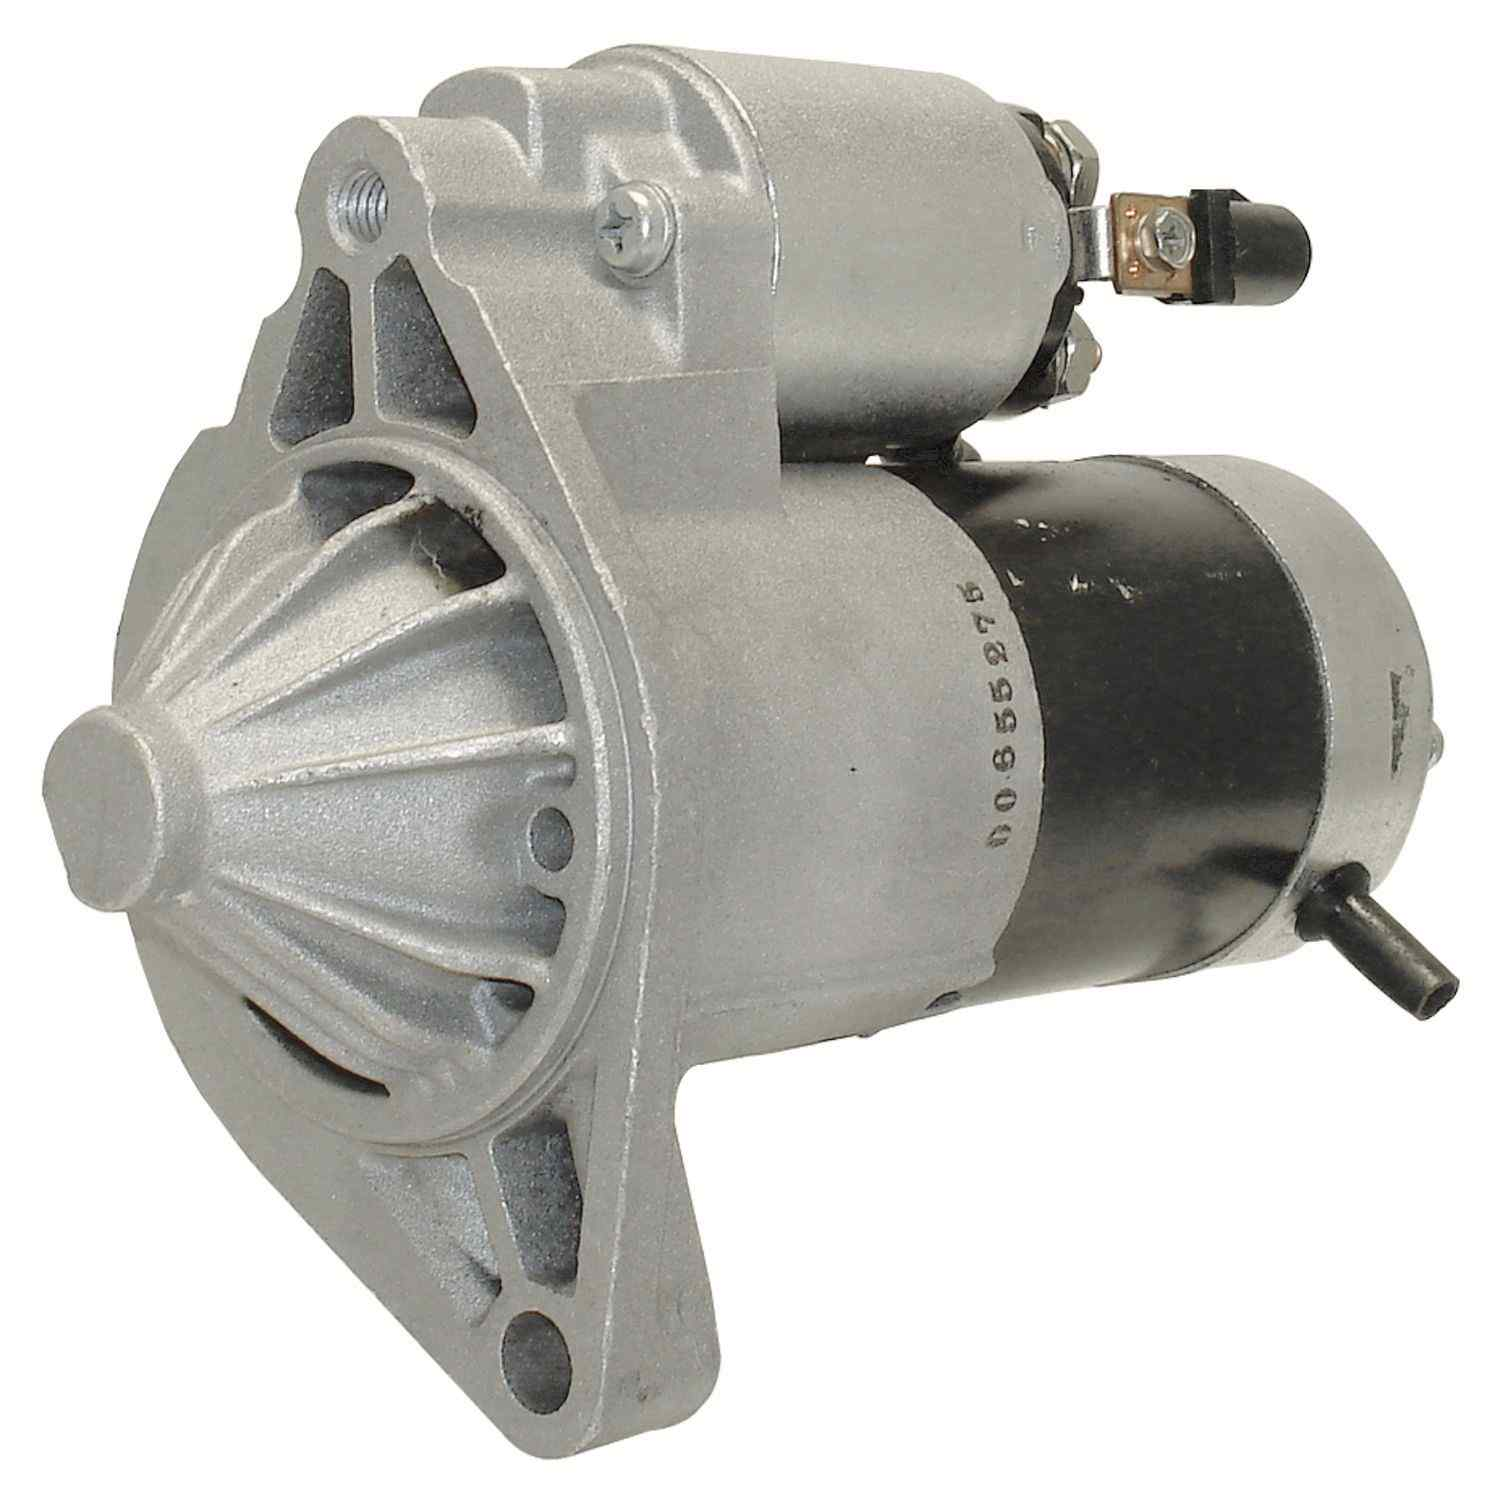 ACDELCO GOLD/PROFESSIONAL - Reman Starter Motor - DCC 336-1691A